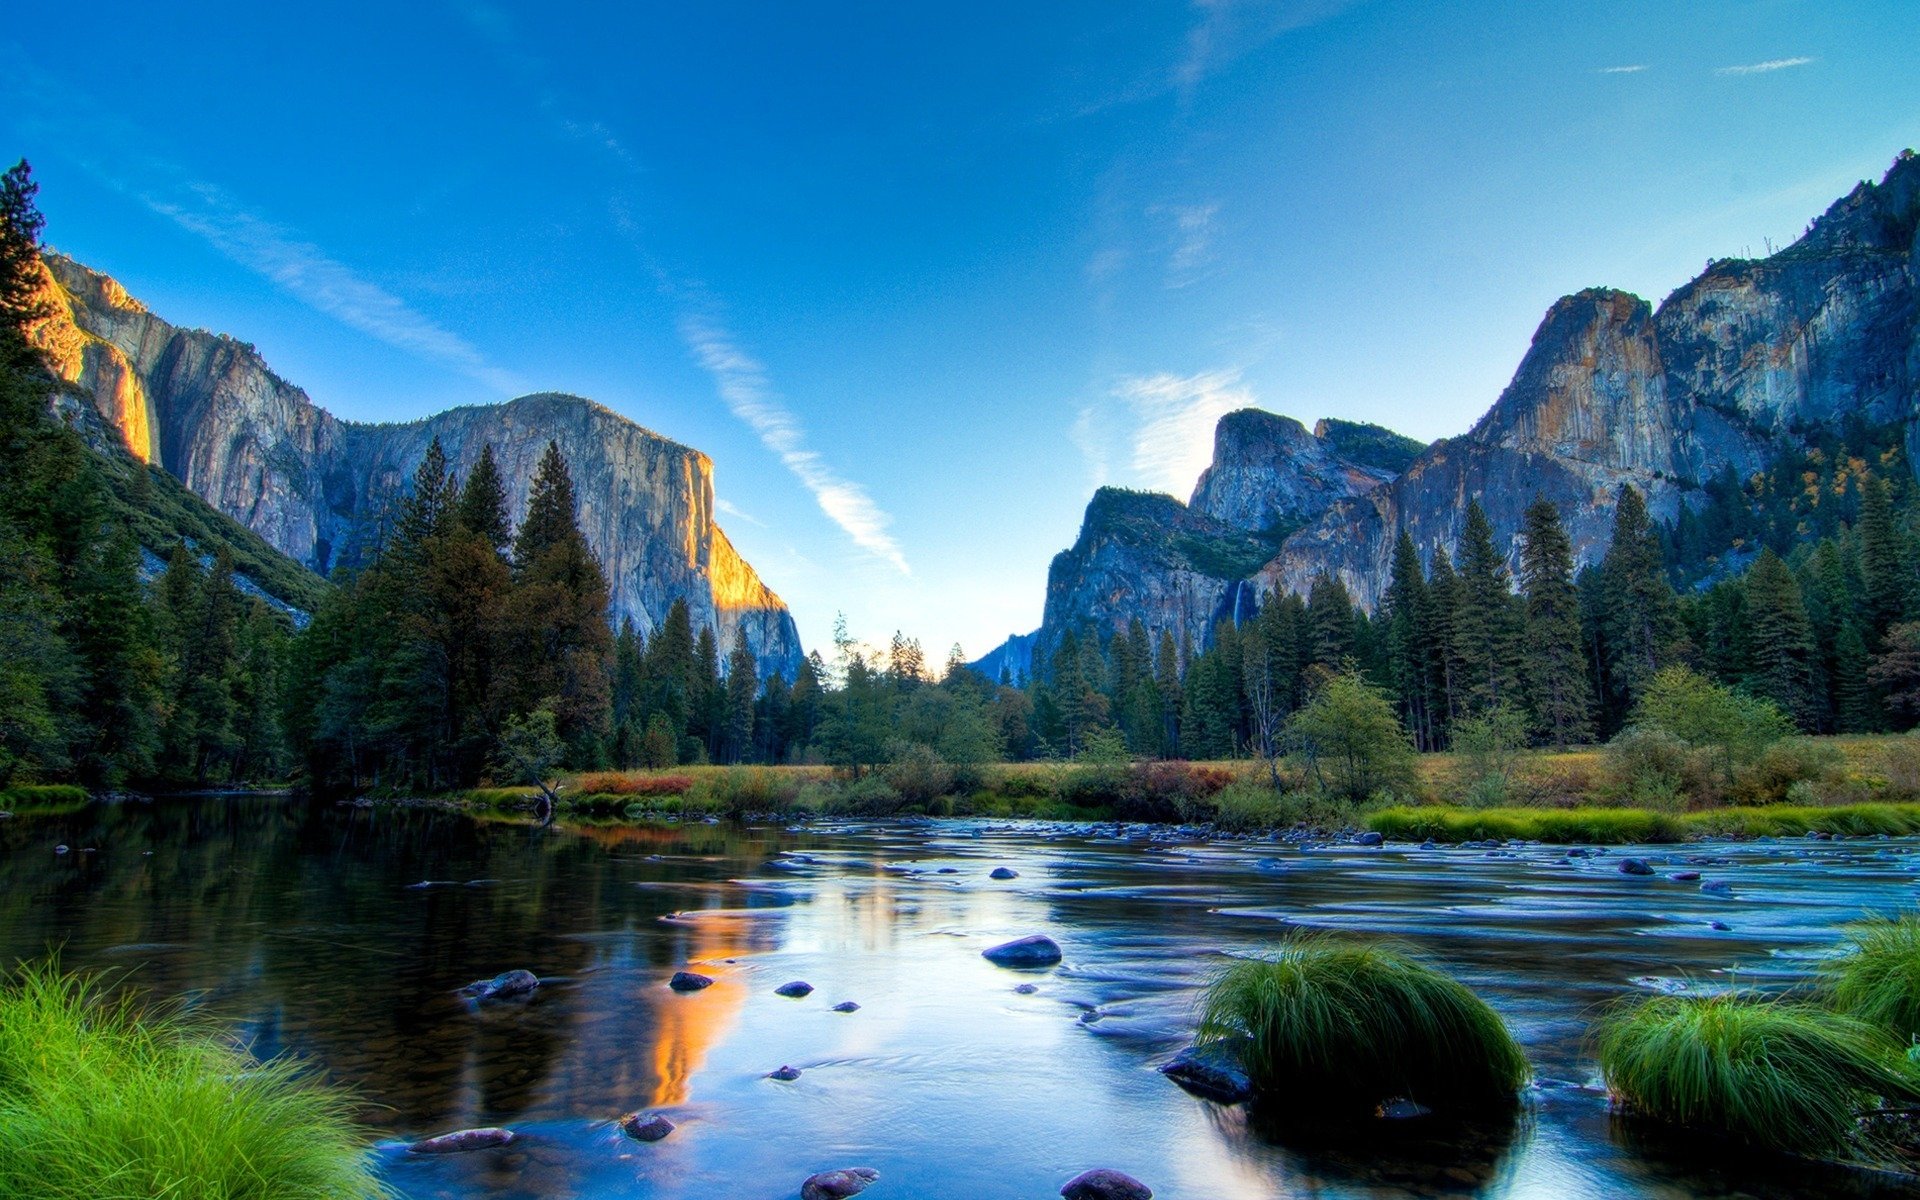 Yosemite national park wallpaper hd wallpapersafari - Yosemite national park hd wallpaper ...